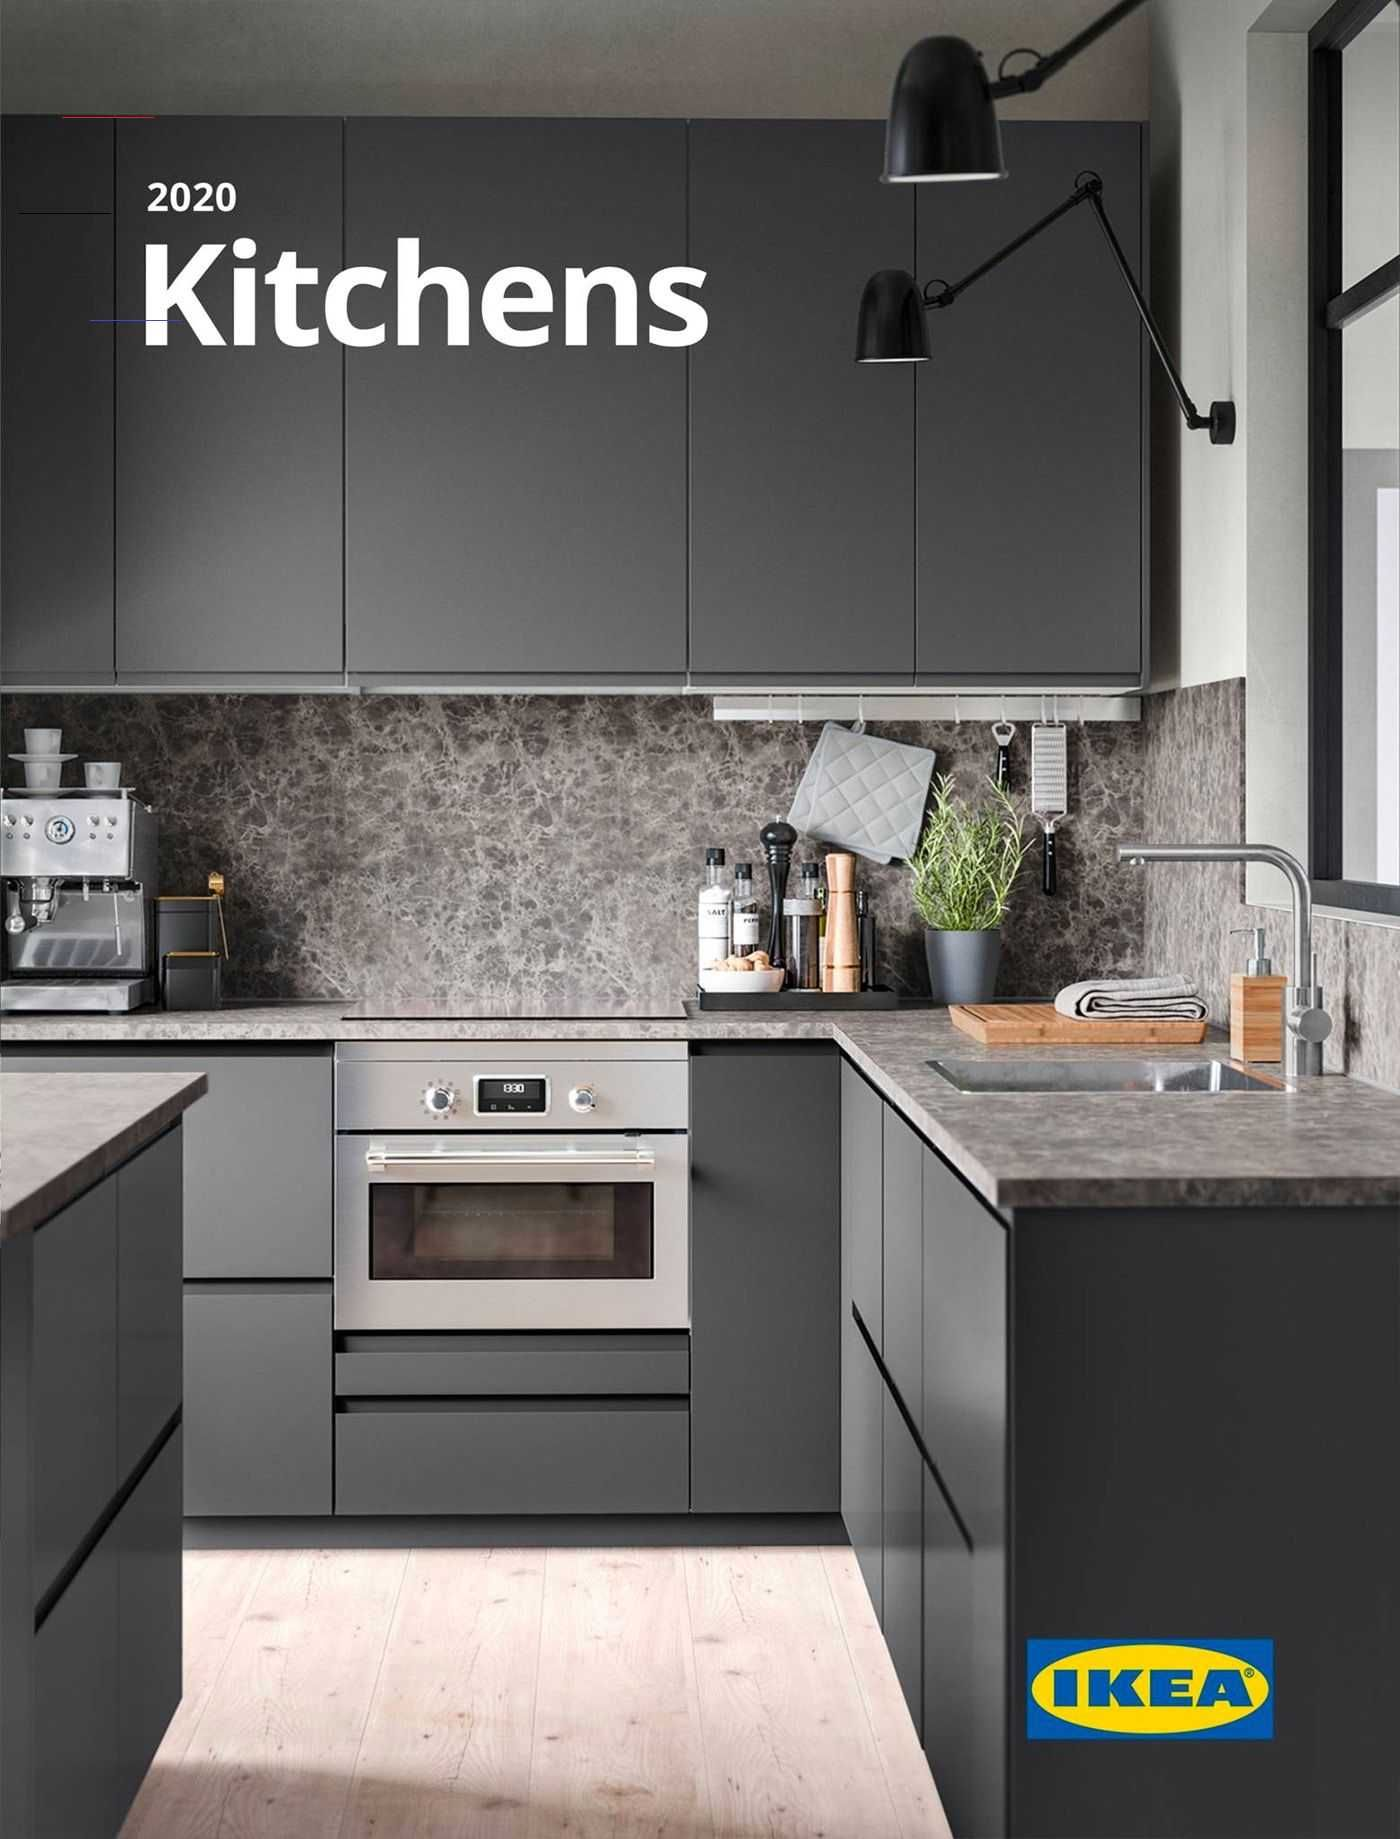 Ikea Küche Side By Side Kühlschrank The 2020 Ikea Catalogue, Rise And Shine - #ikeakeuken - Get Up On The Right Side Of The Bed With 2020 Ikea Catalogue.… | Ikea Küchenideen, Wohnung Küche, Ikea Küche